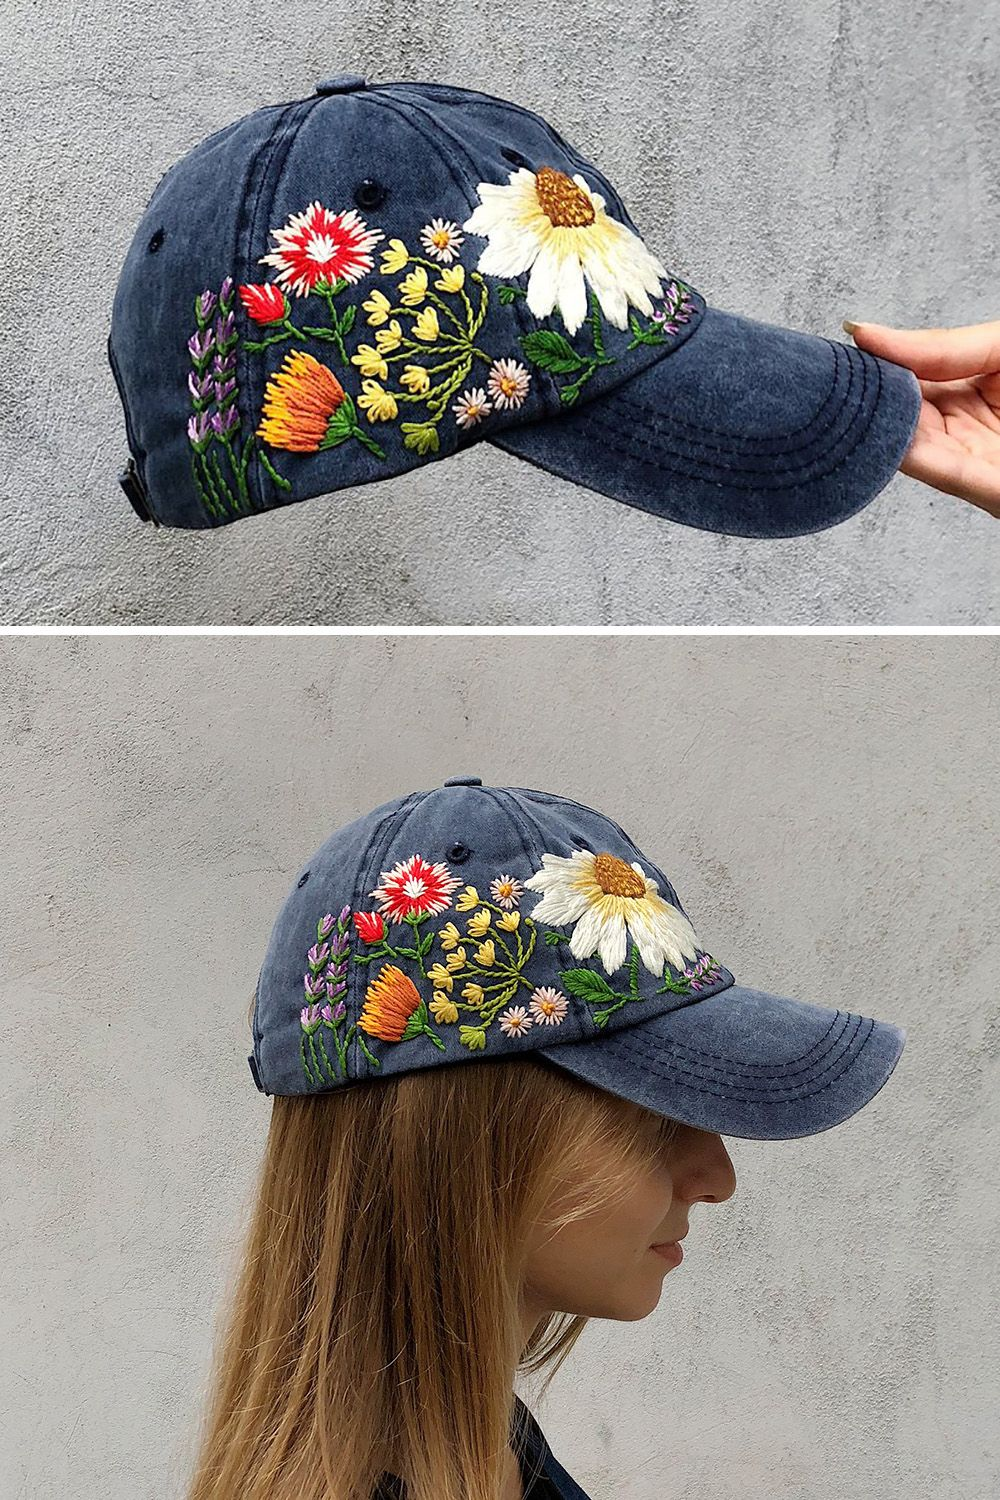 319f0aa4a6d90 No spring outfit is complete without a hand-embroidered floral baseball hat.  It s the easy outfit accessory for any spring look.